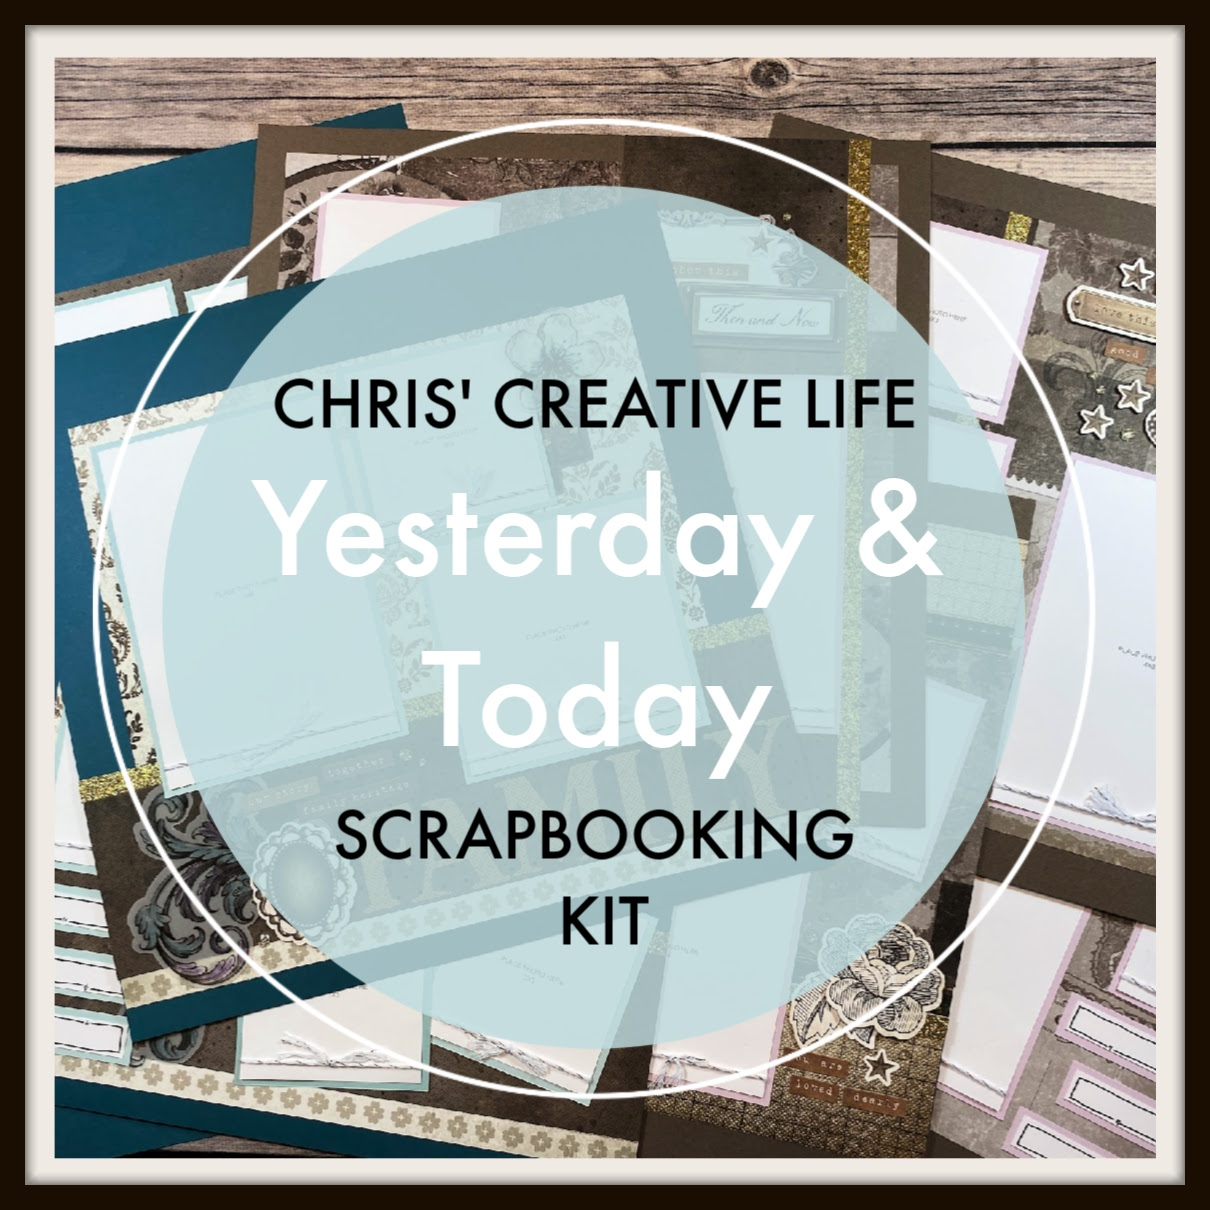 Yesterday&Today Scrapbooking Workshop Guide